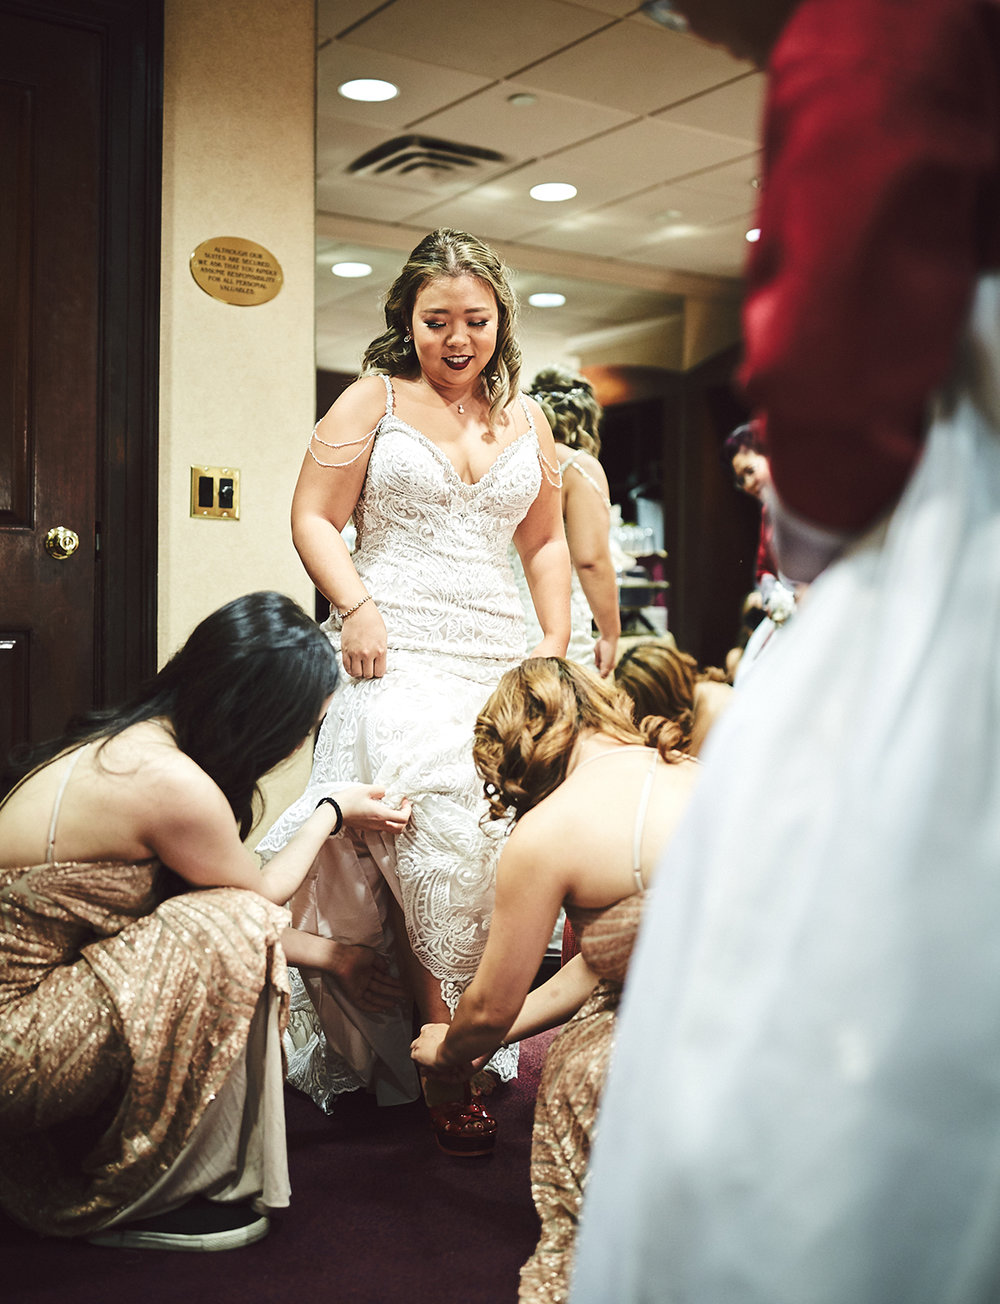 180922_CrestHollowCountryClubWeddingPhotography_LongIslandWeddingPhotographer_By_BriJohnsonWeddings_0025.jpg